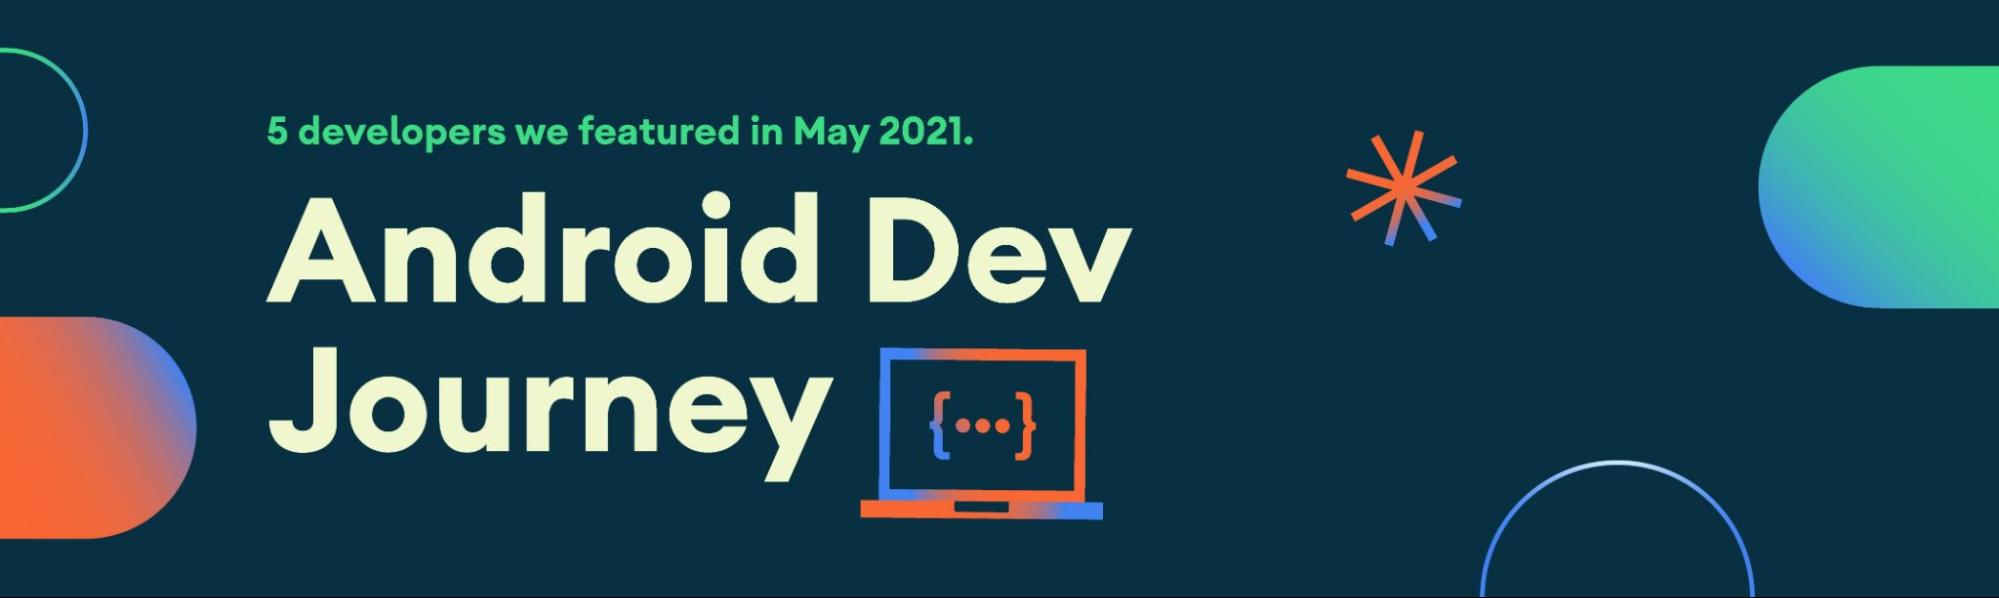 Android Dev Journey, 5 Developers featured in May